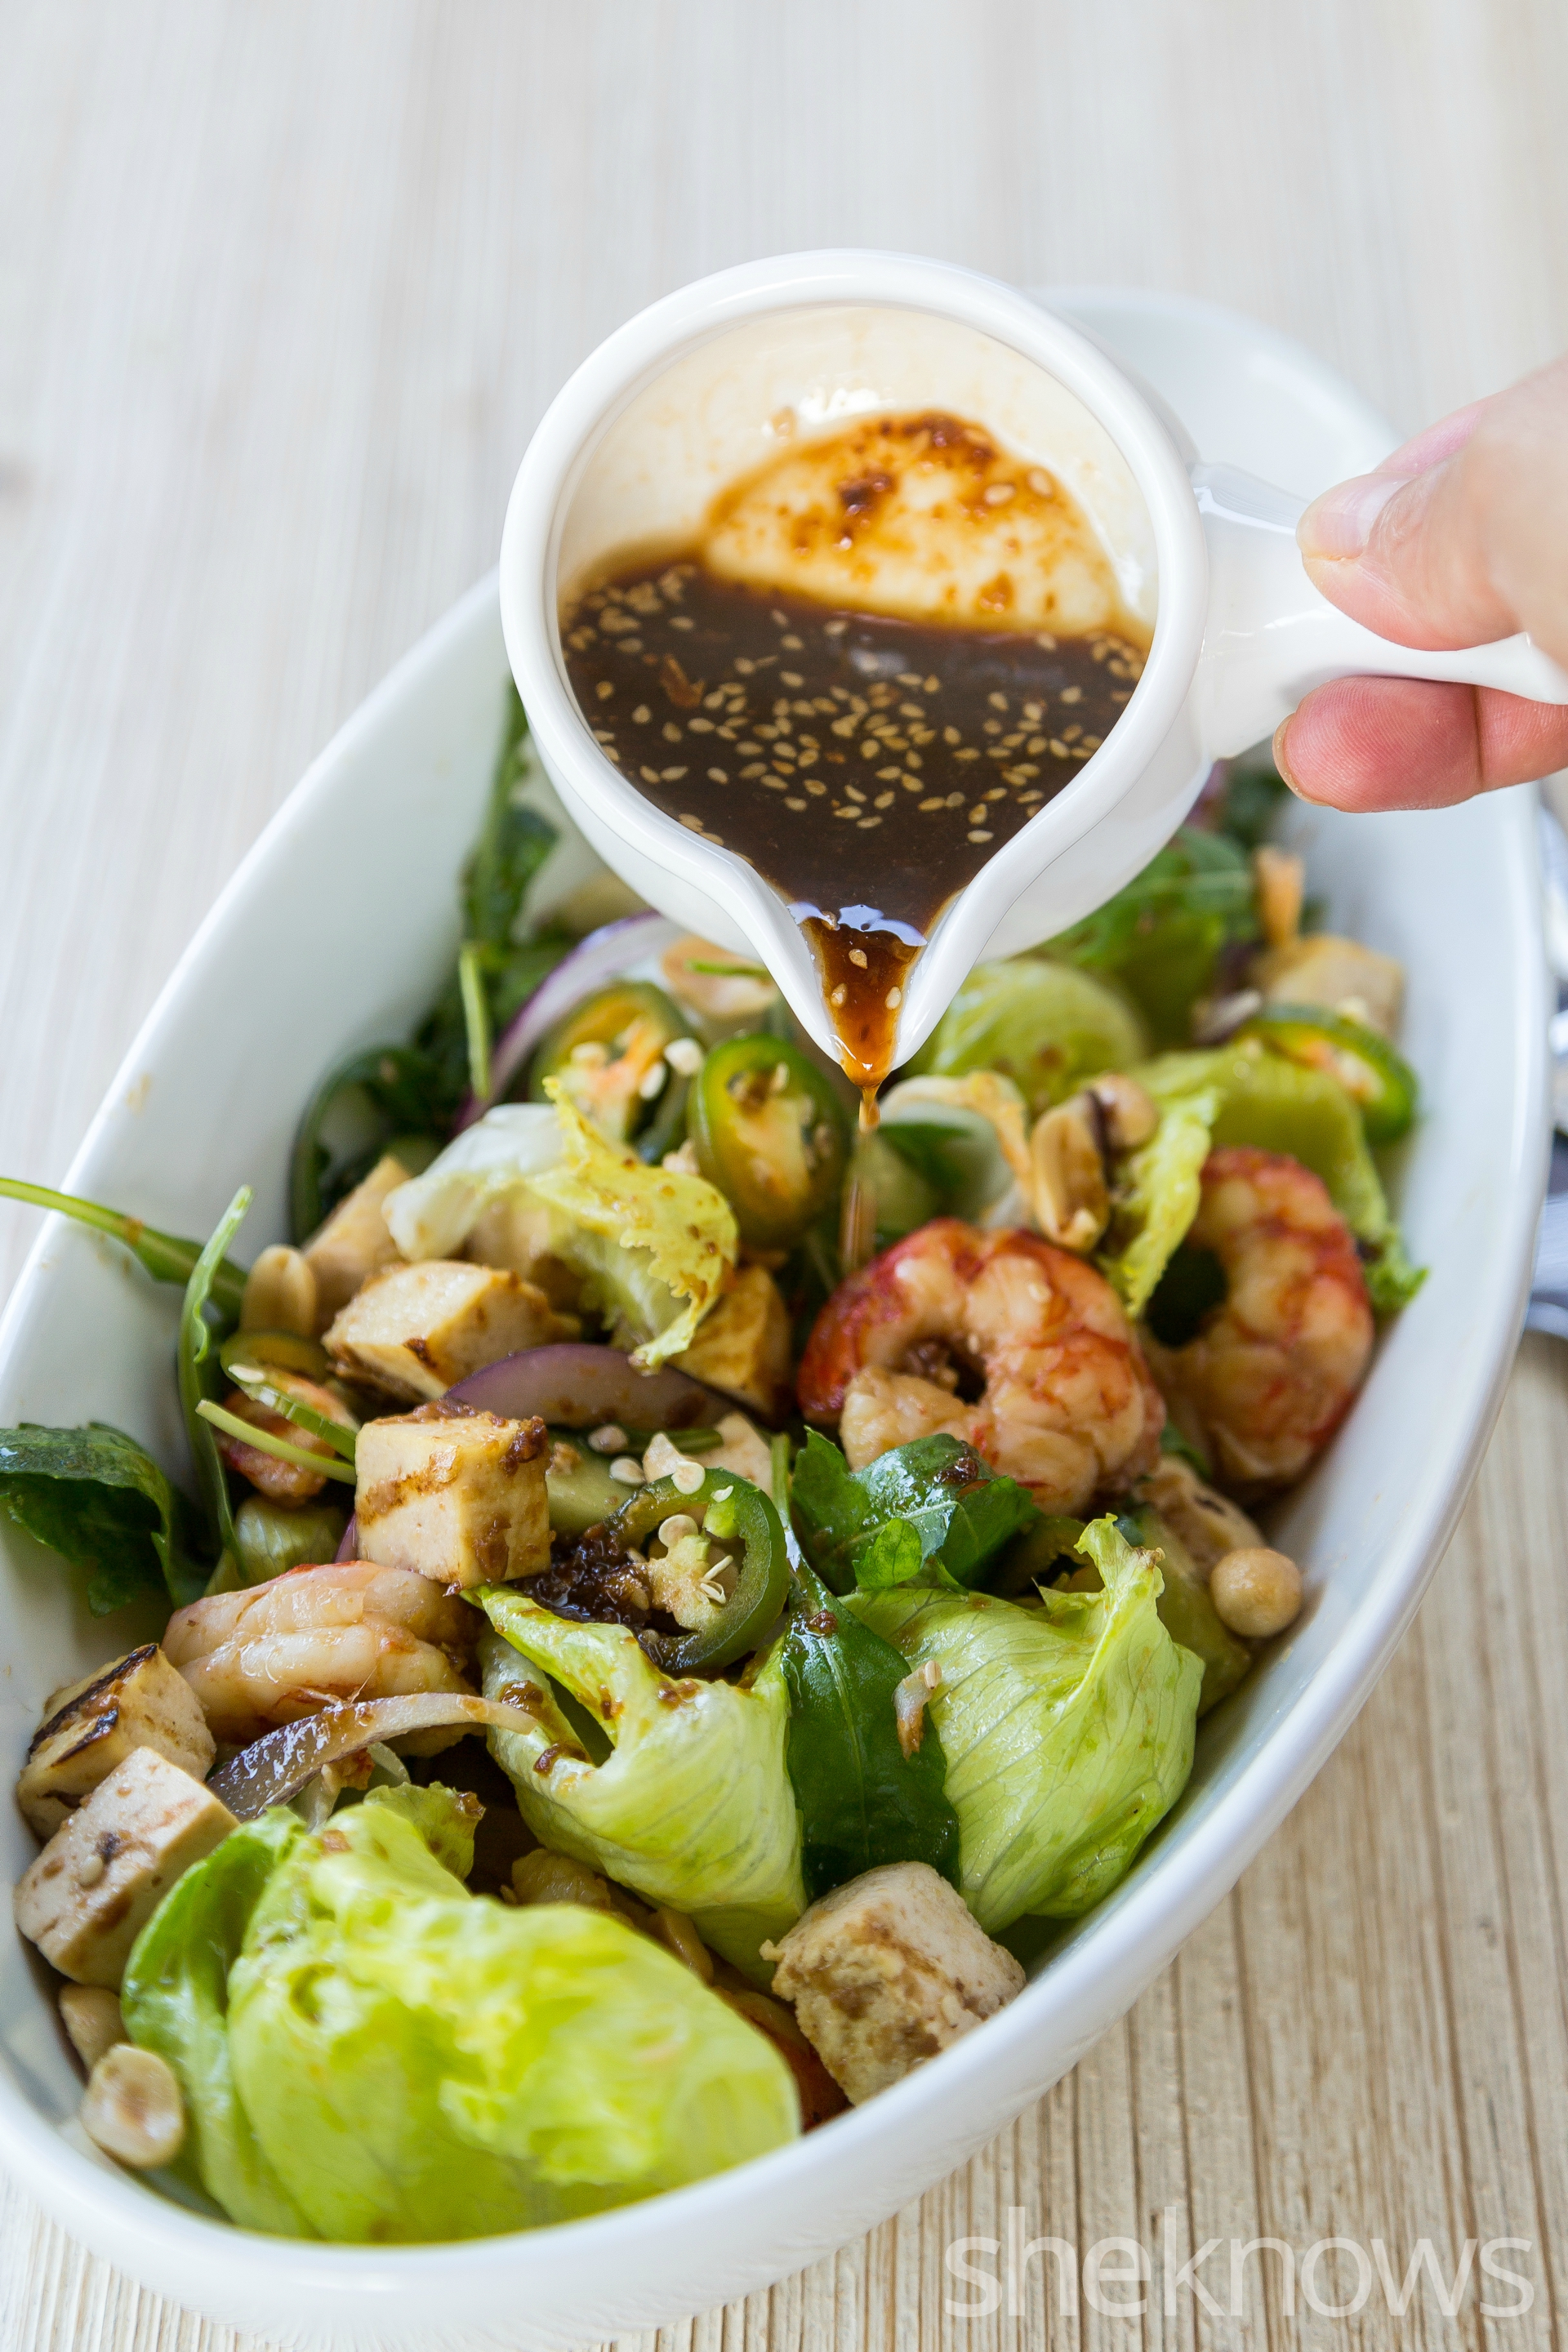 spicy-asian-salad-with-tofu-peanuts-and-shrimp-sauce